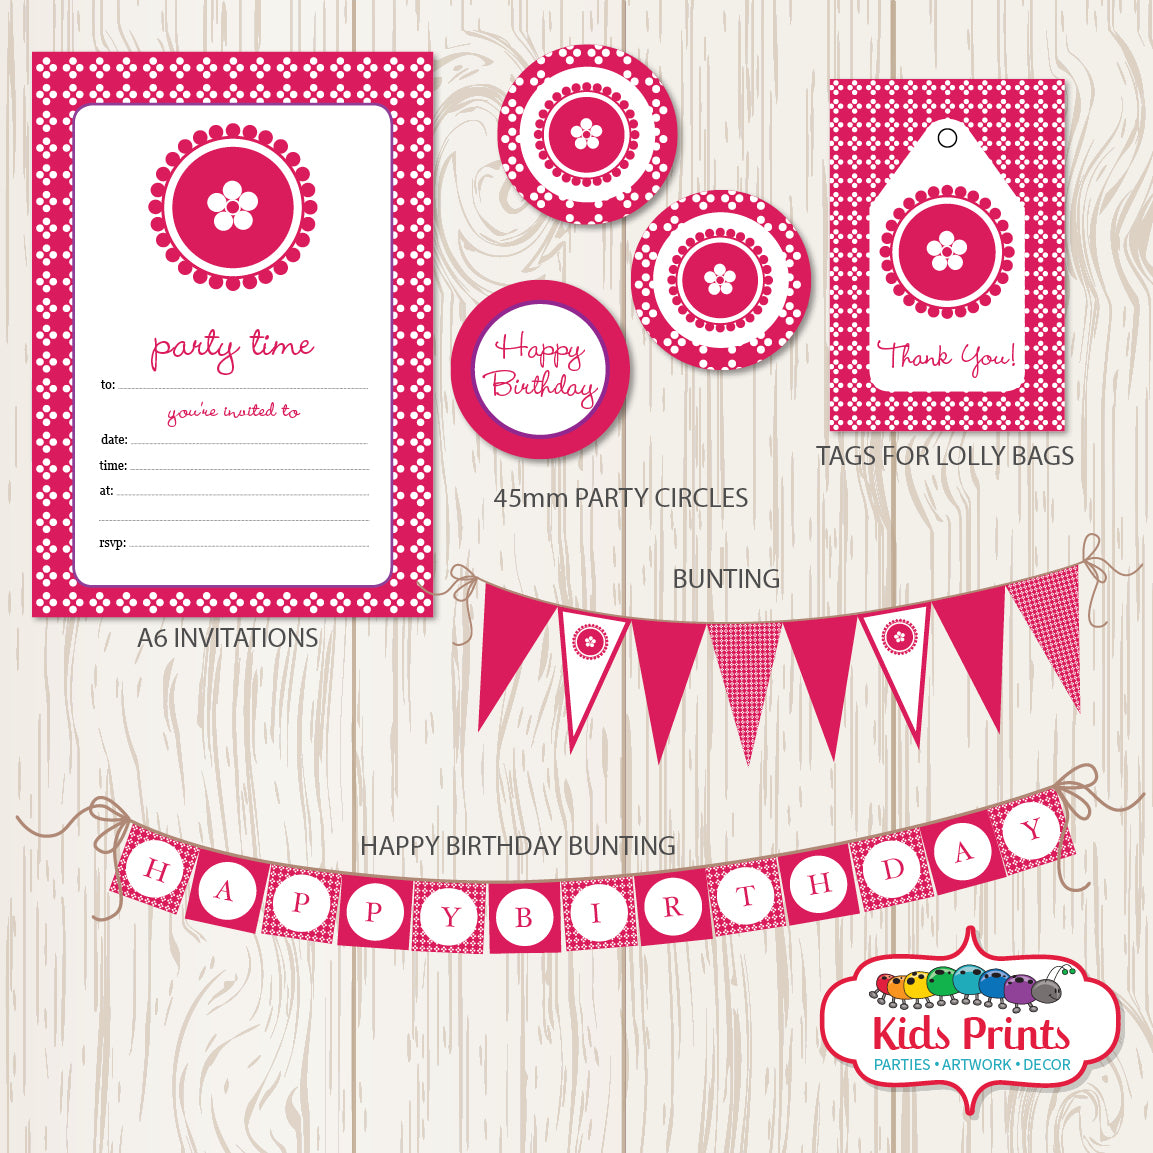 Pink Dots Printable Party Stationery - Kids Prints Online - kids wall art printable - nursery art printable - printable invitations - digital invitations - kids wall art - kids prints